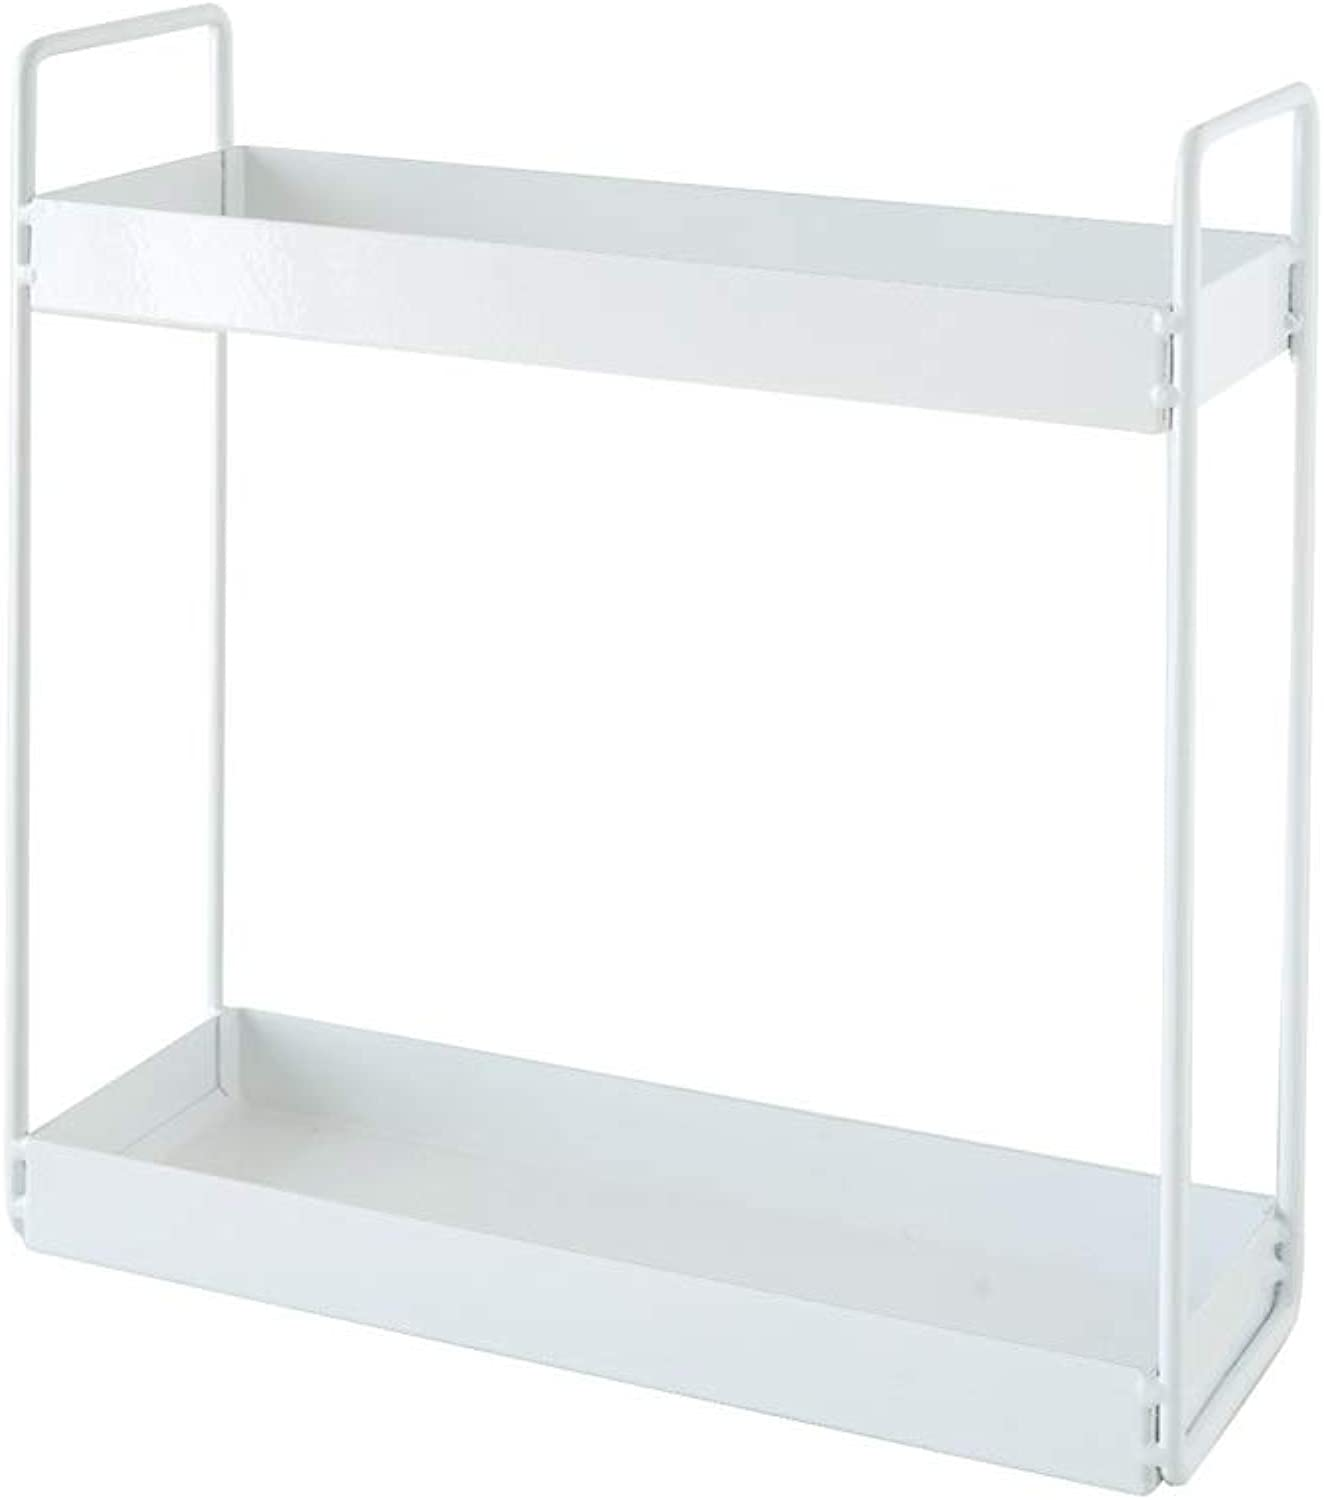 Desktop Sundries Storage Rack Nordic Style, Bathroom Desktop Wrought Iron Shelf, Kitchen Living Room Shelves 3.9 7.87 Inch (color   White, Size   10cm)